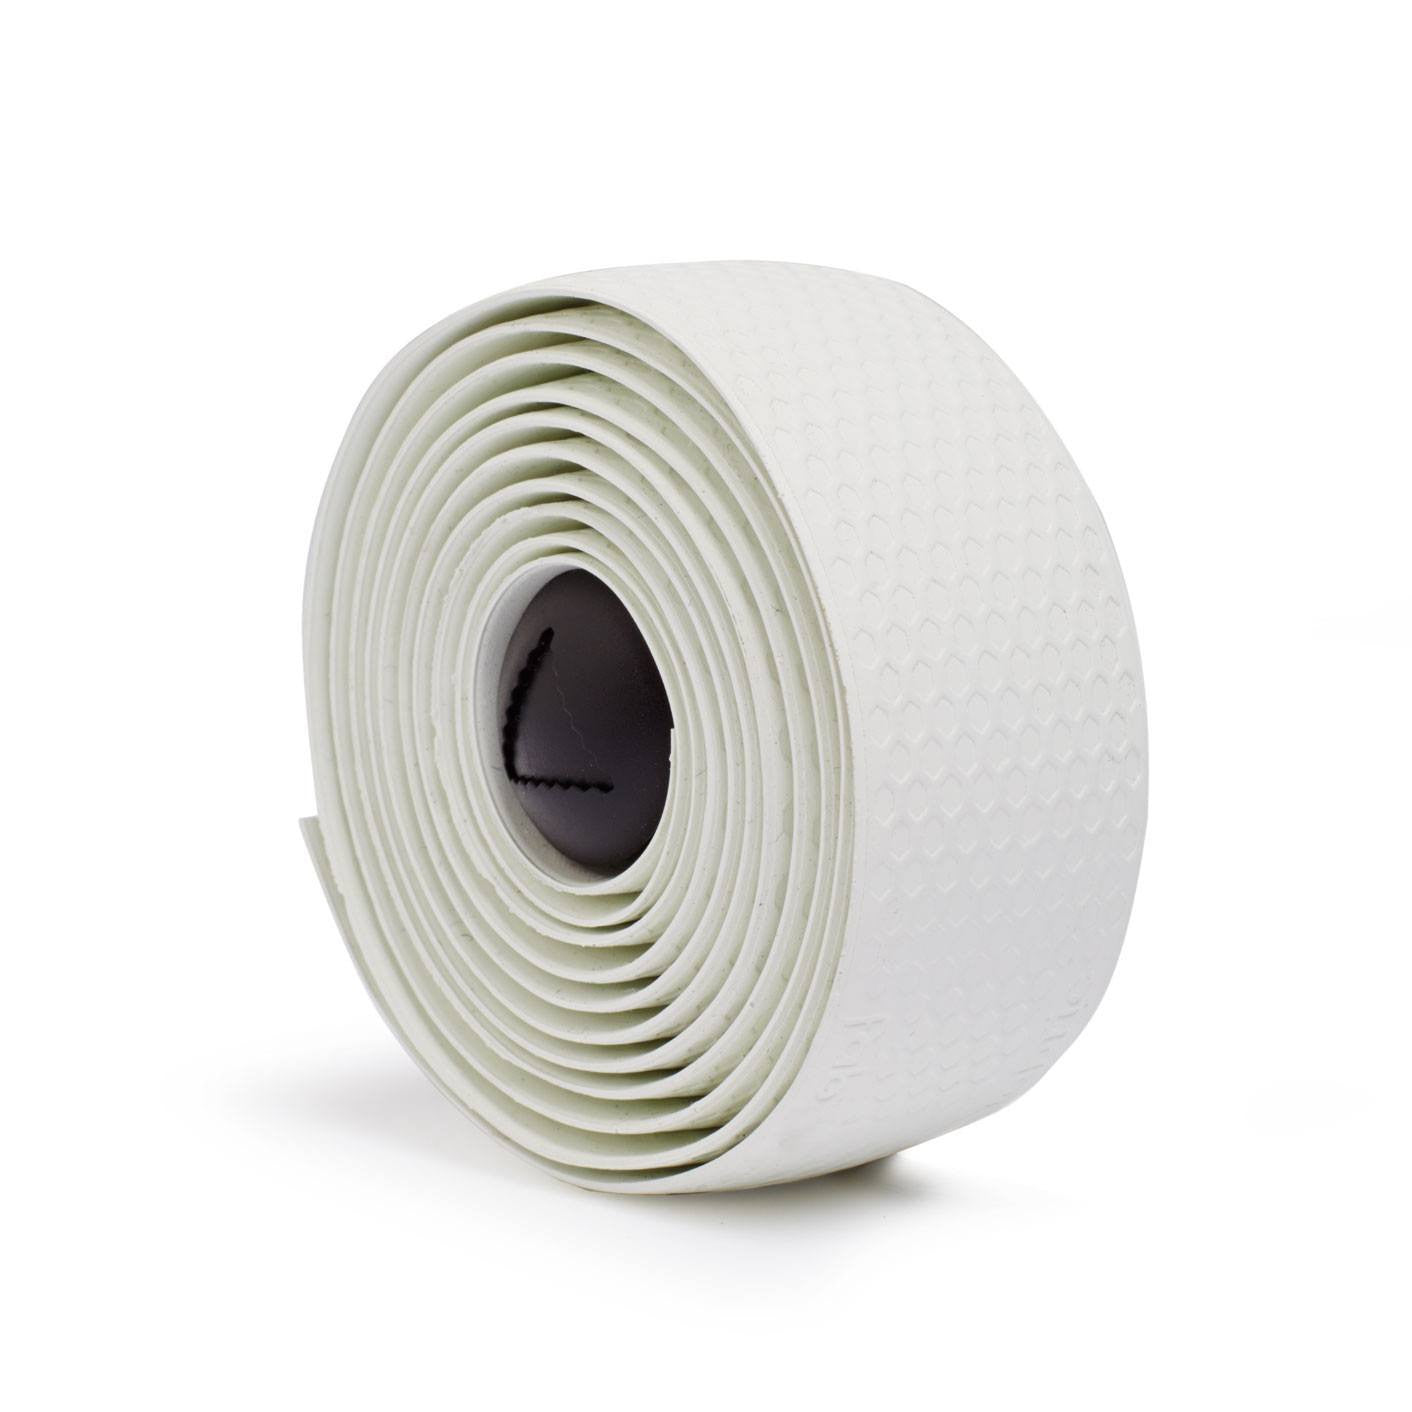 Fabric Silicone Handlebar Tape - White - Cycles Galleria Melbourne